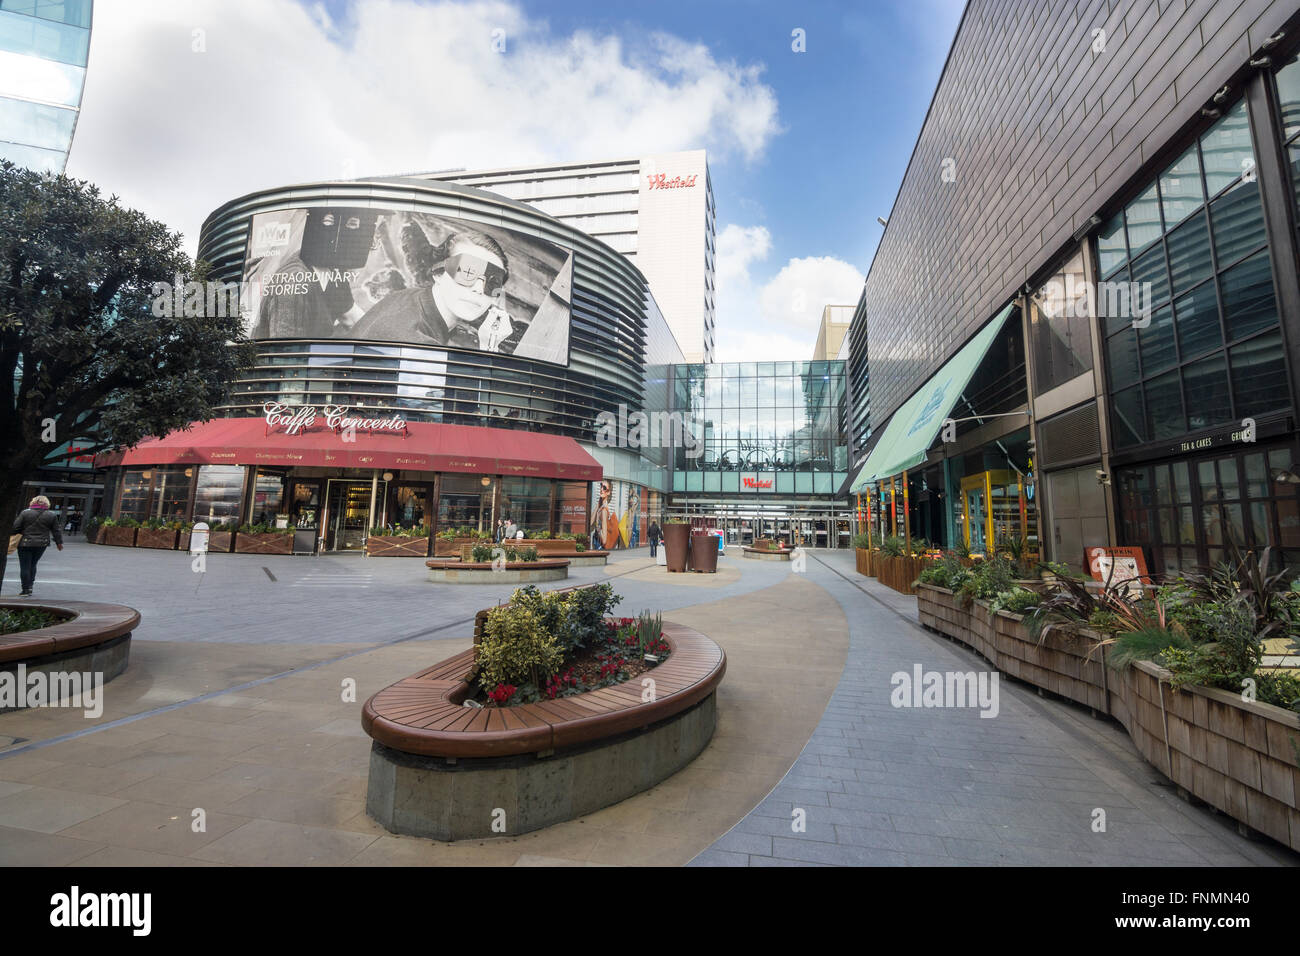 westfield shopping centre, stratford - Stock Image